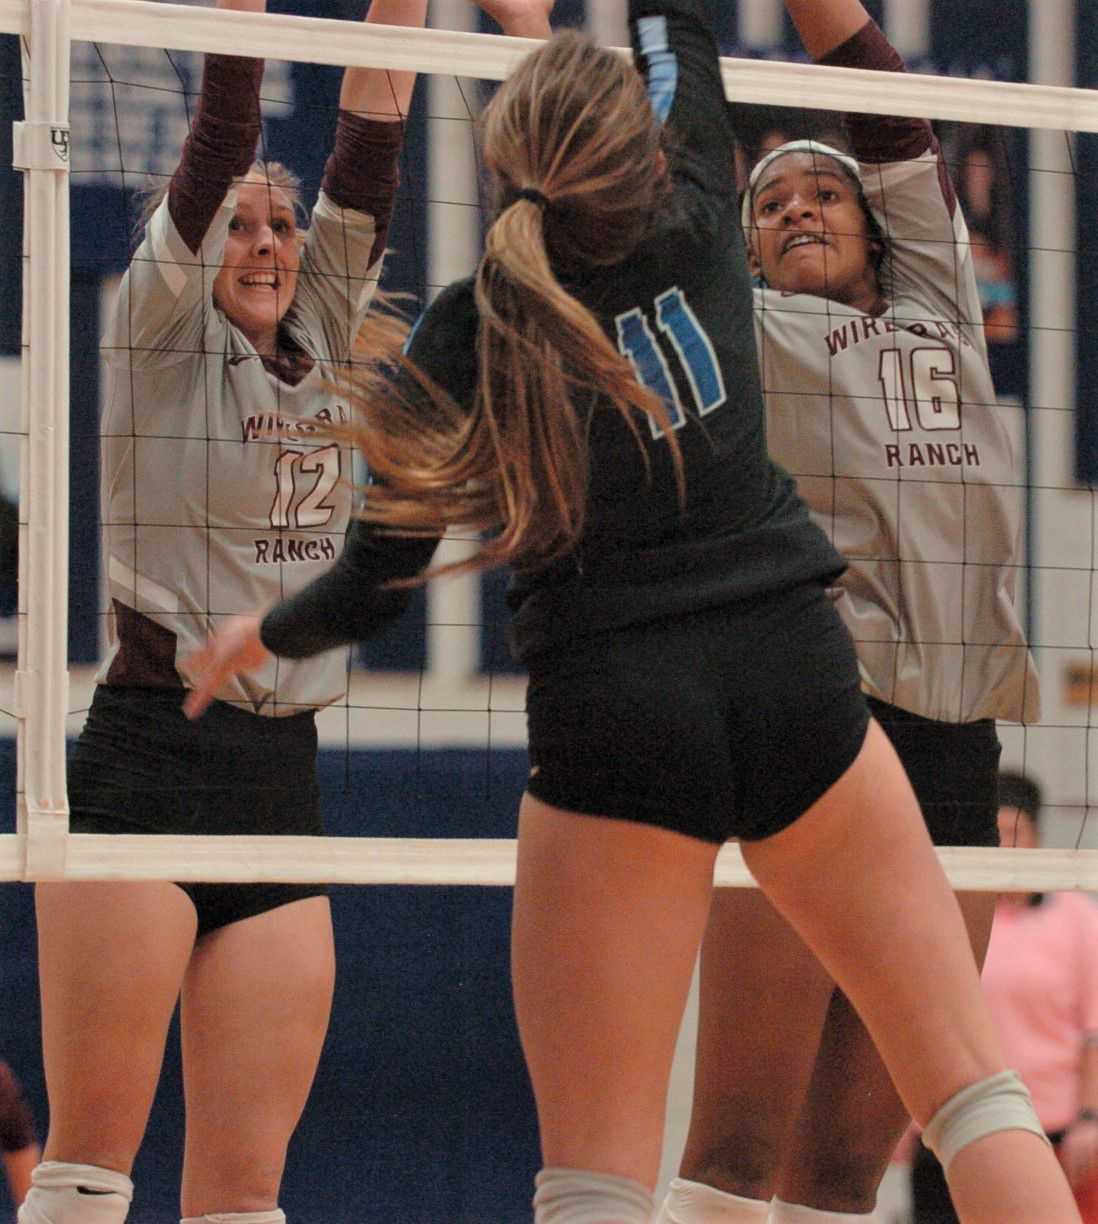 6A-5 V-BALL: Wiregrass beats East Lake in semis